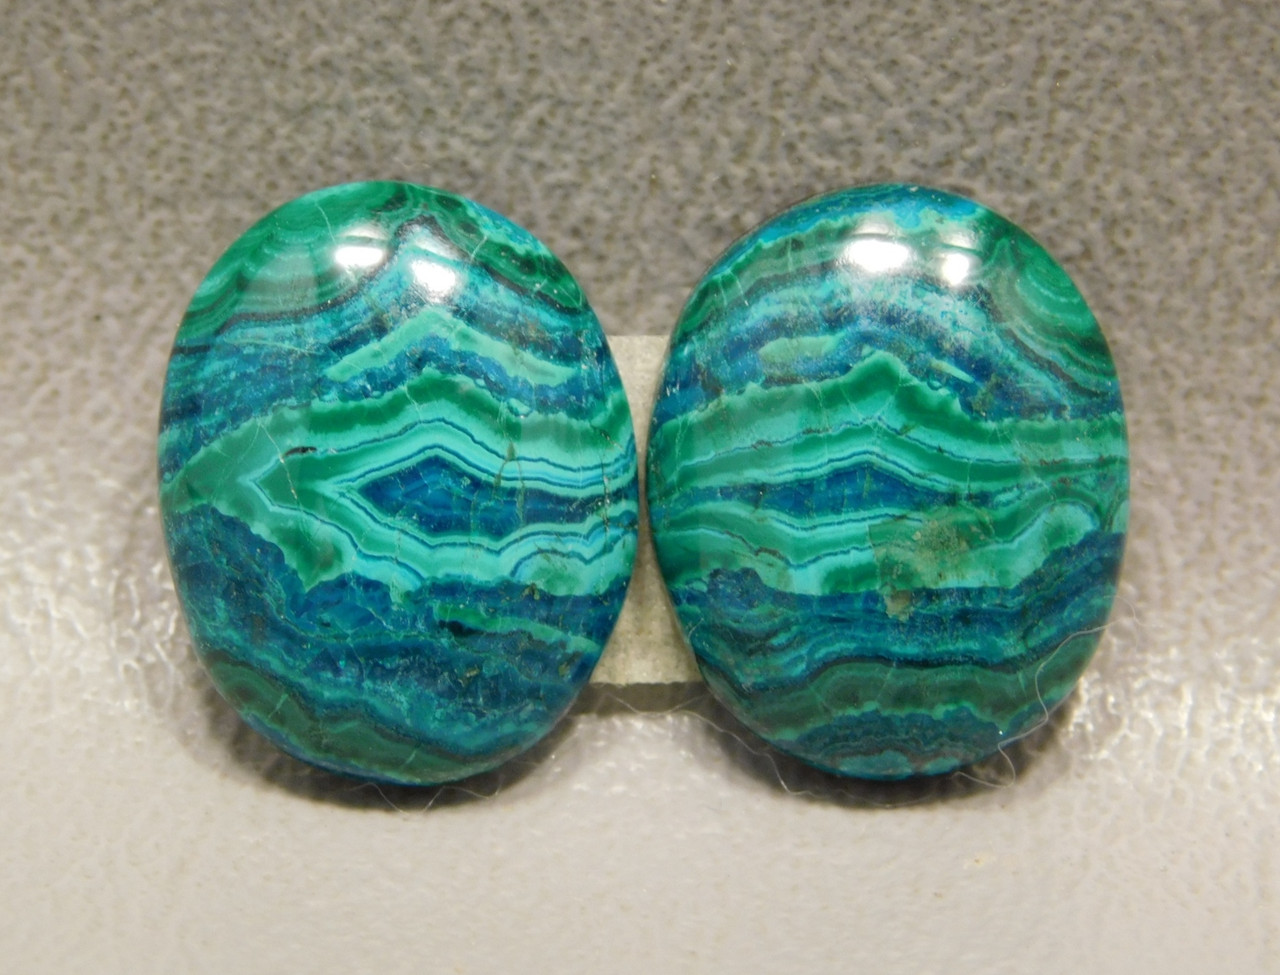 Chrysocolla Malachite Collector Stones Cabochons Bagdad #27